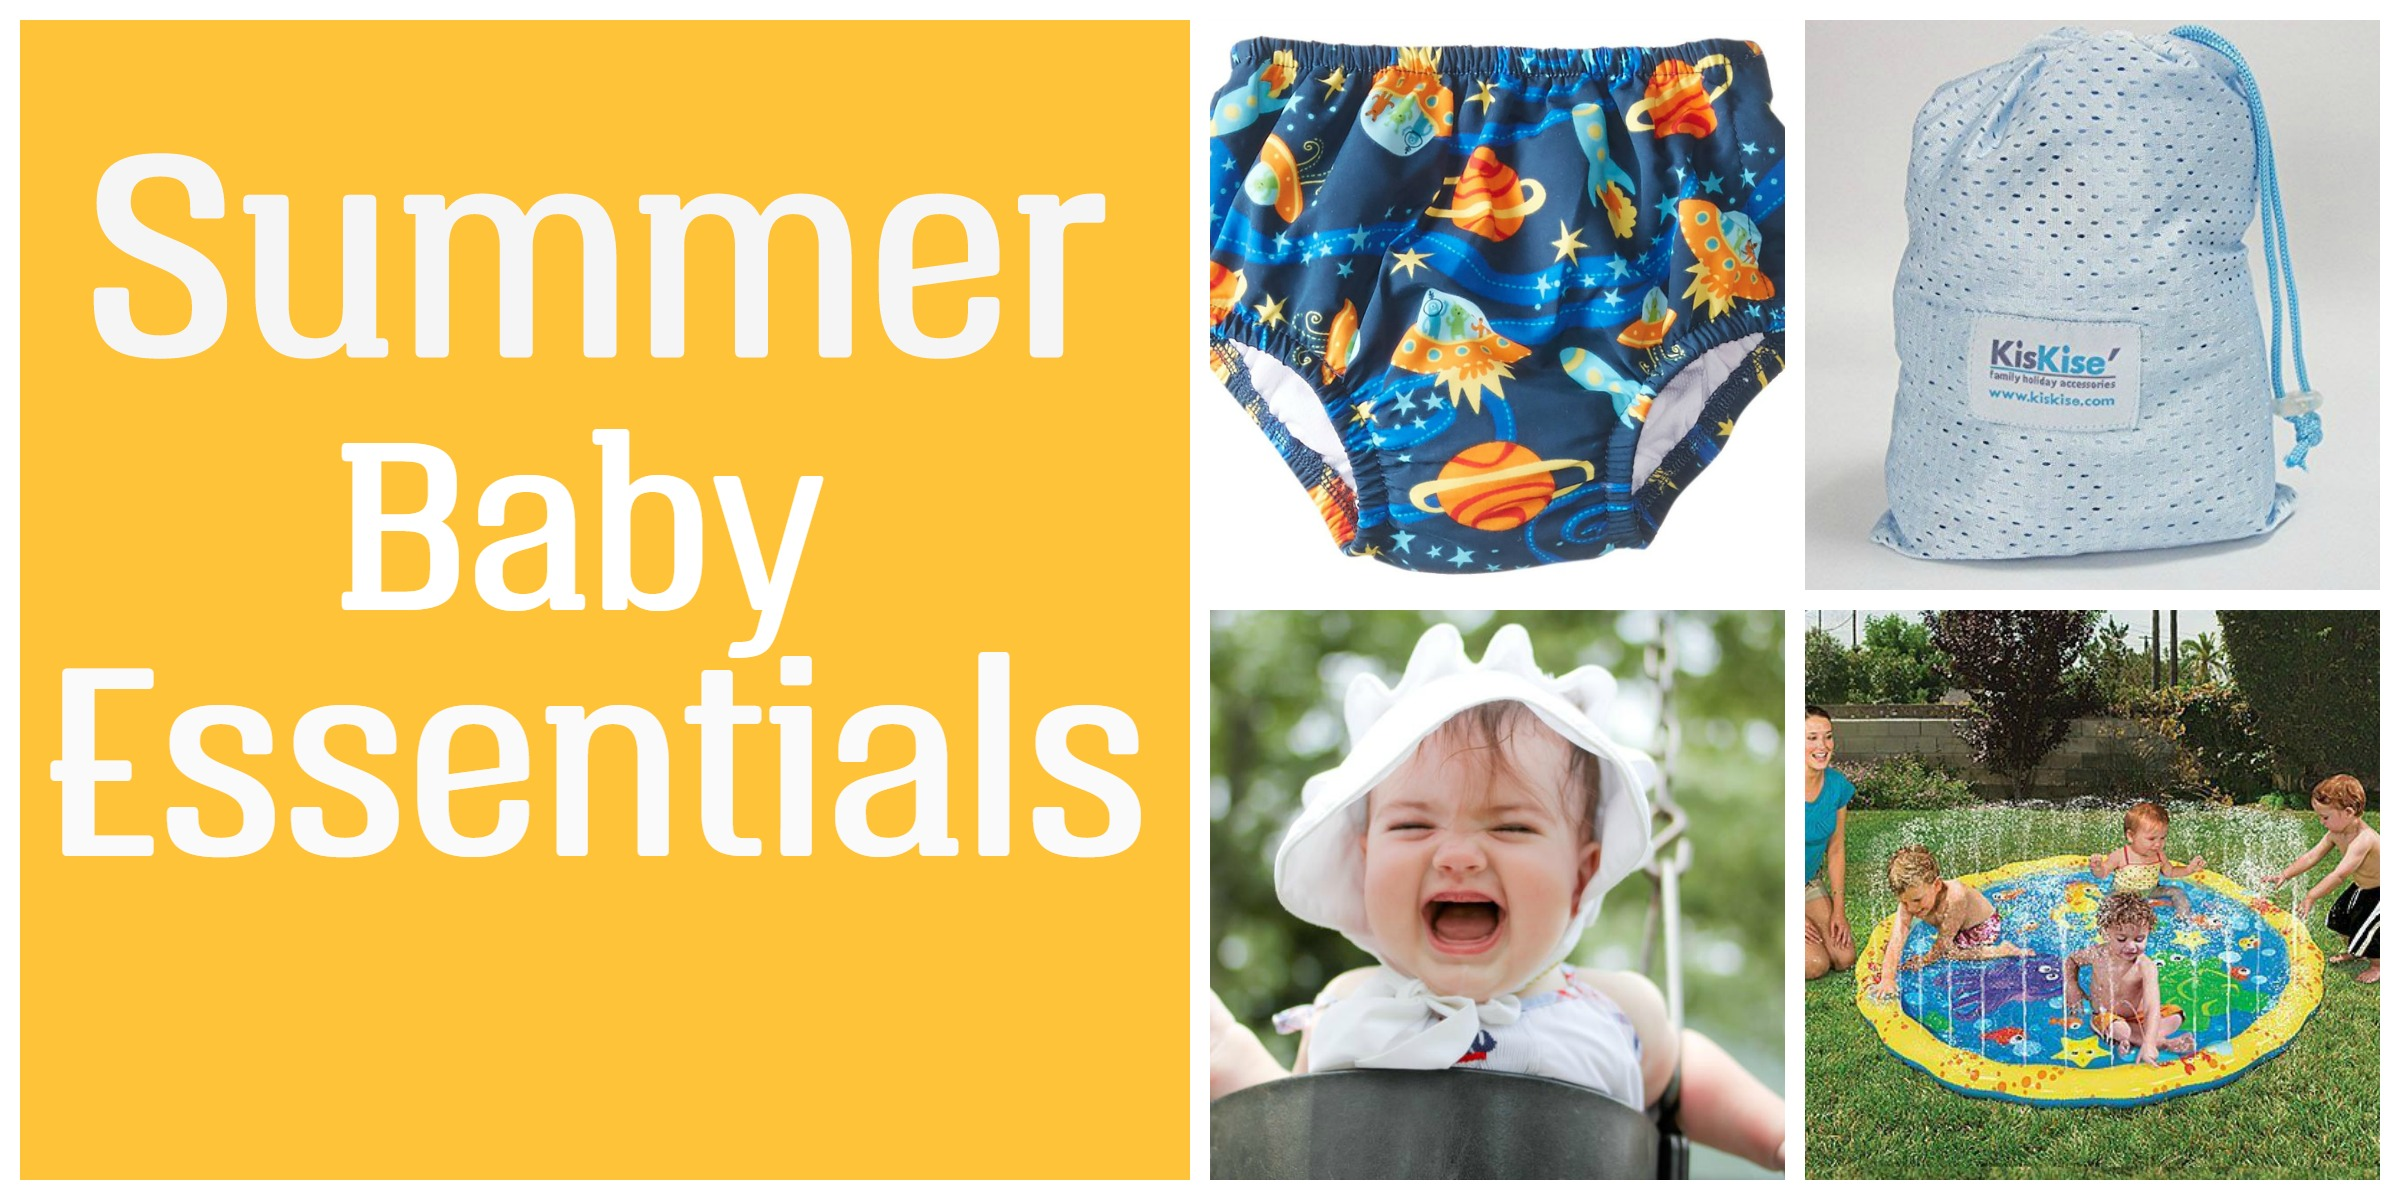 Four Summer Baby Essentials